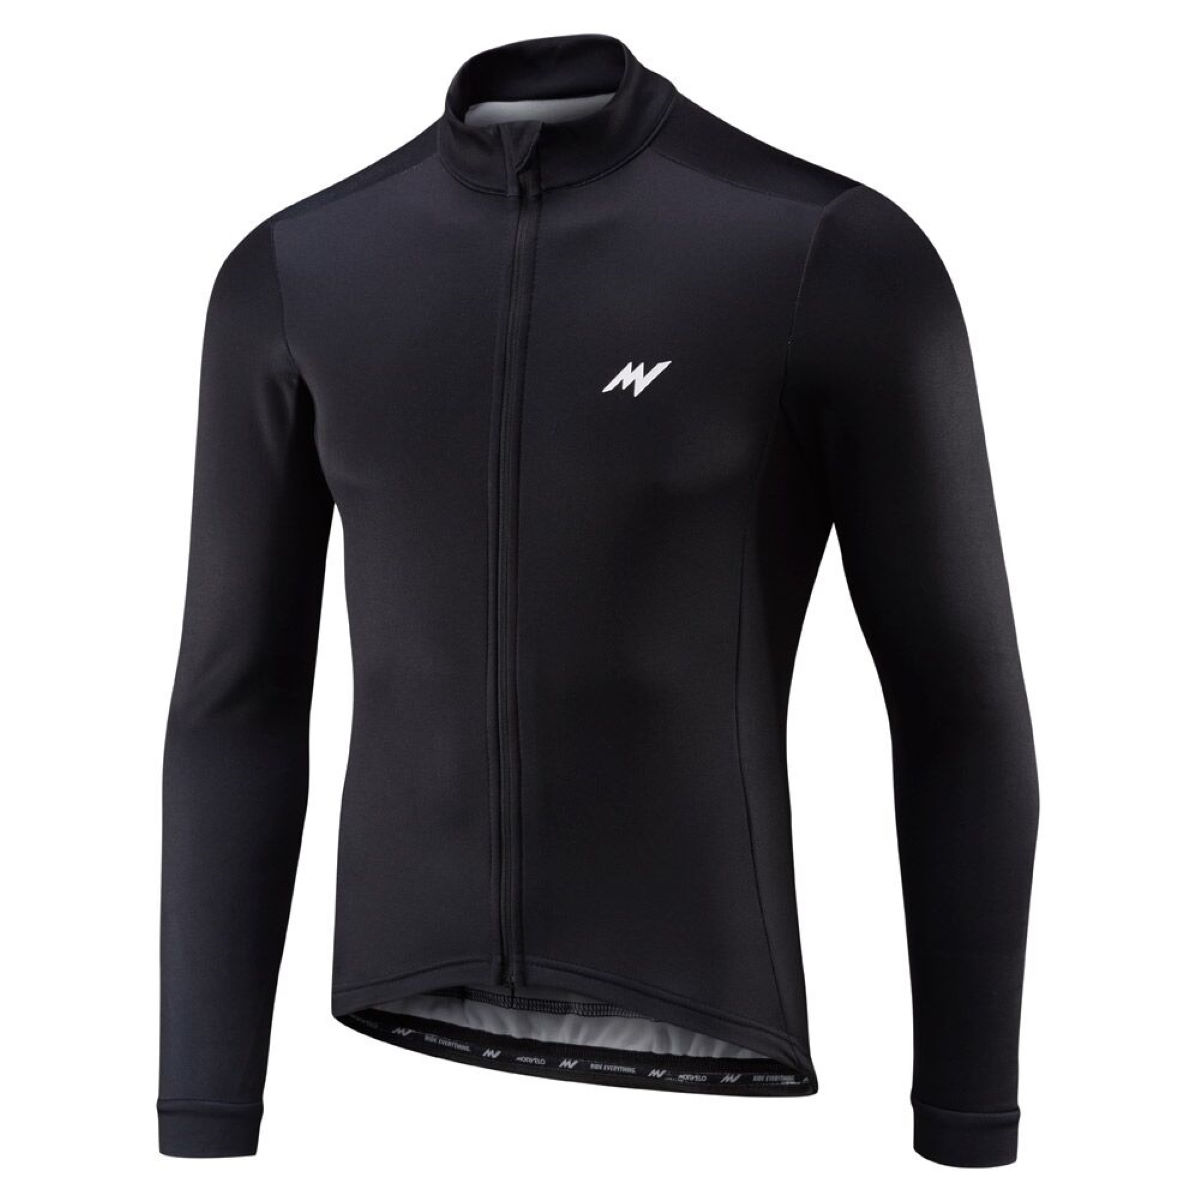 Maillot Morvelo Stealth Thermoactive (manches longues) - M Maillots